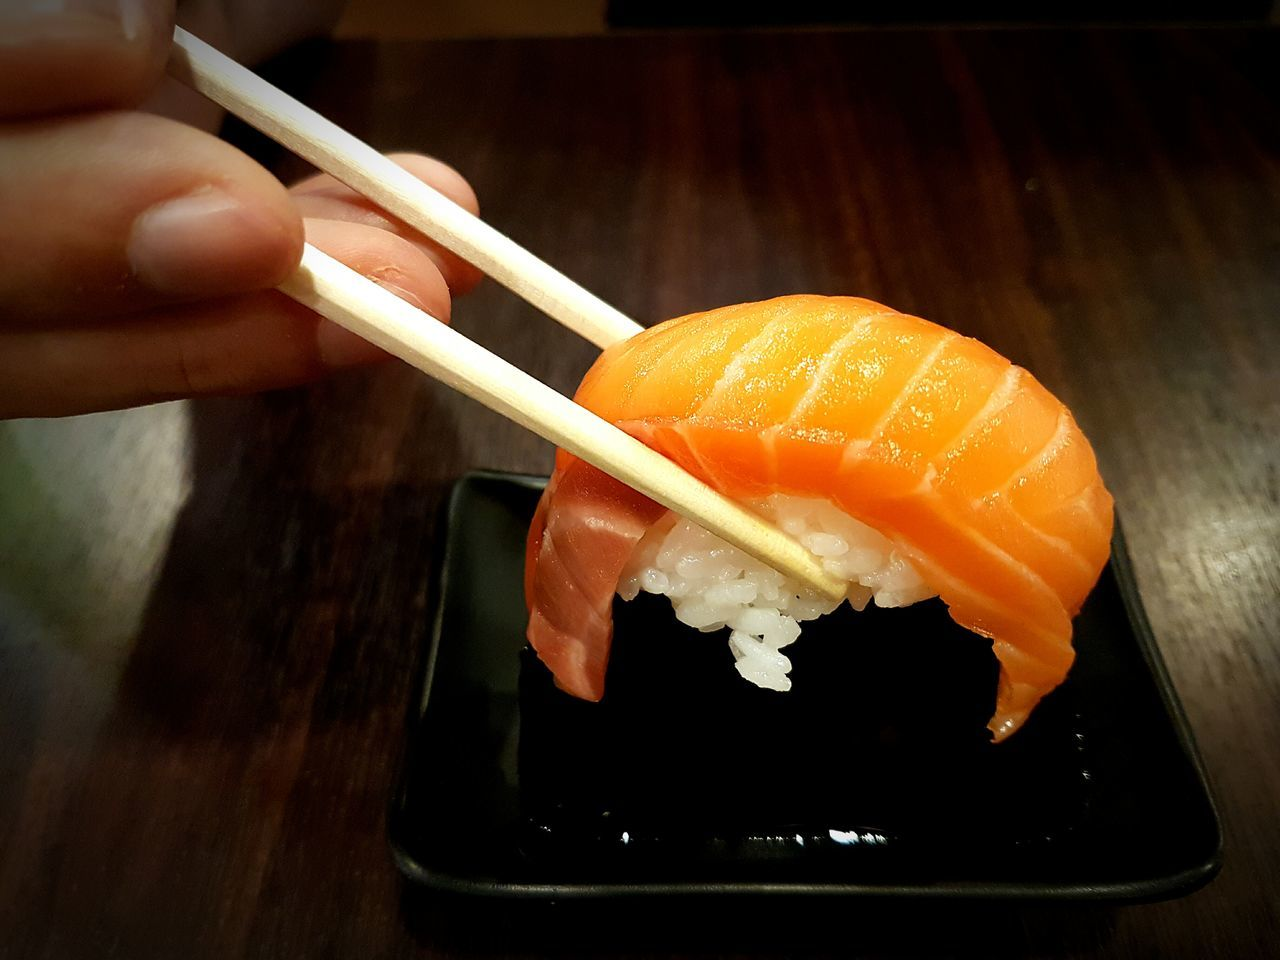 Food Food And Drink Healthy Eating Holding Freshness Close-up Japanese Food Japanese Style Japanese Restaurant Salmon Salmon Sushi Sushi Sushi Time Sushi Bar Sushi Restaurant Sushilover Sushilovers Sushi Love Sushitime Sushi Tei Fresh Salmon Food Photography